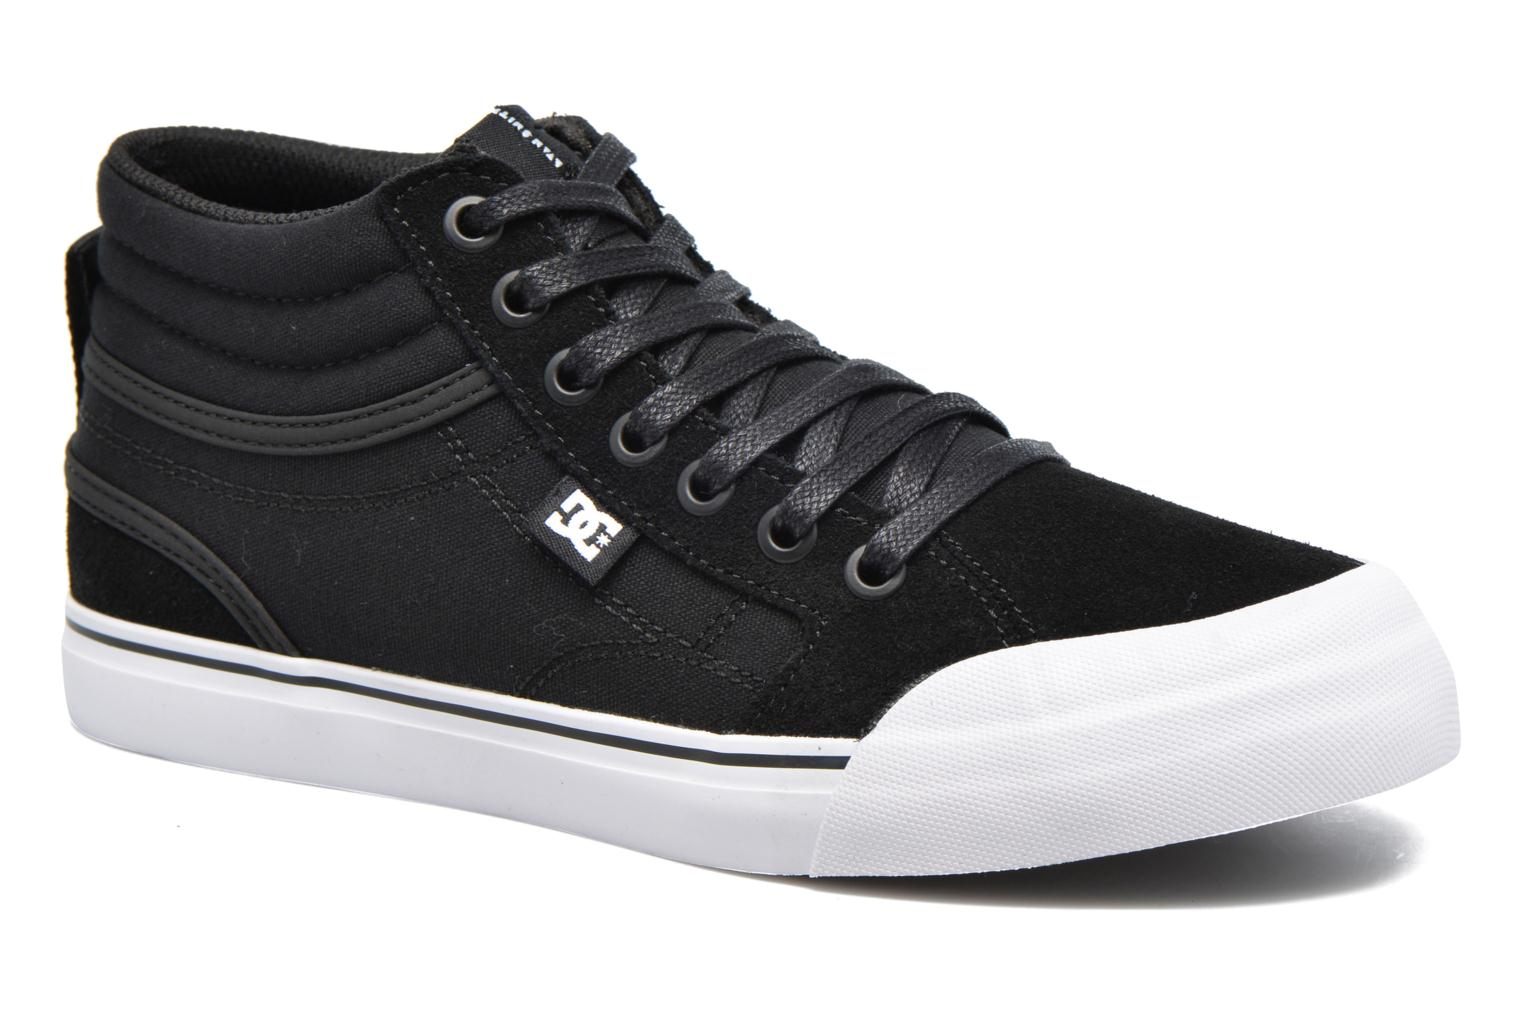 Evan Hi B by DC ShoesRebajas - 20%